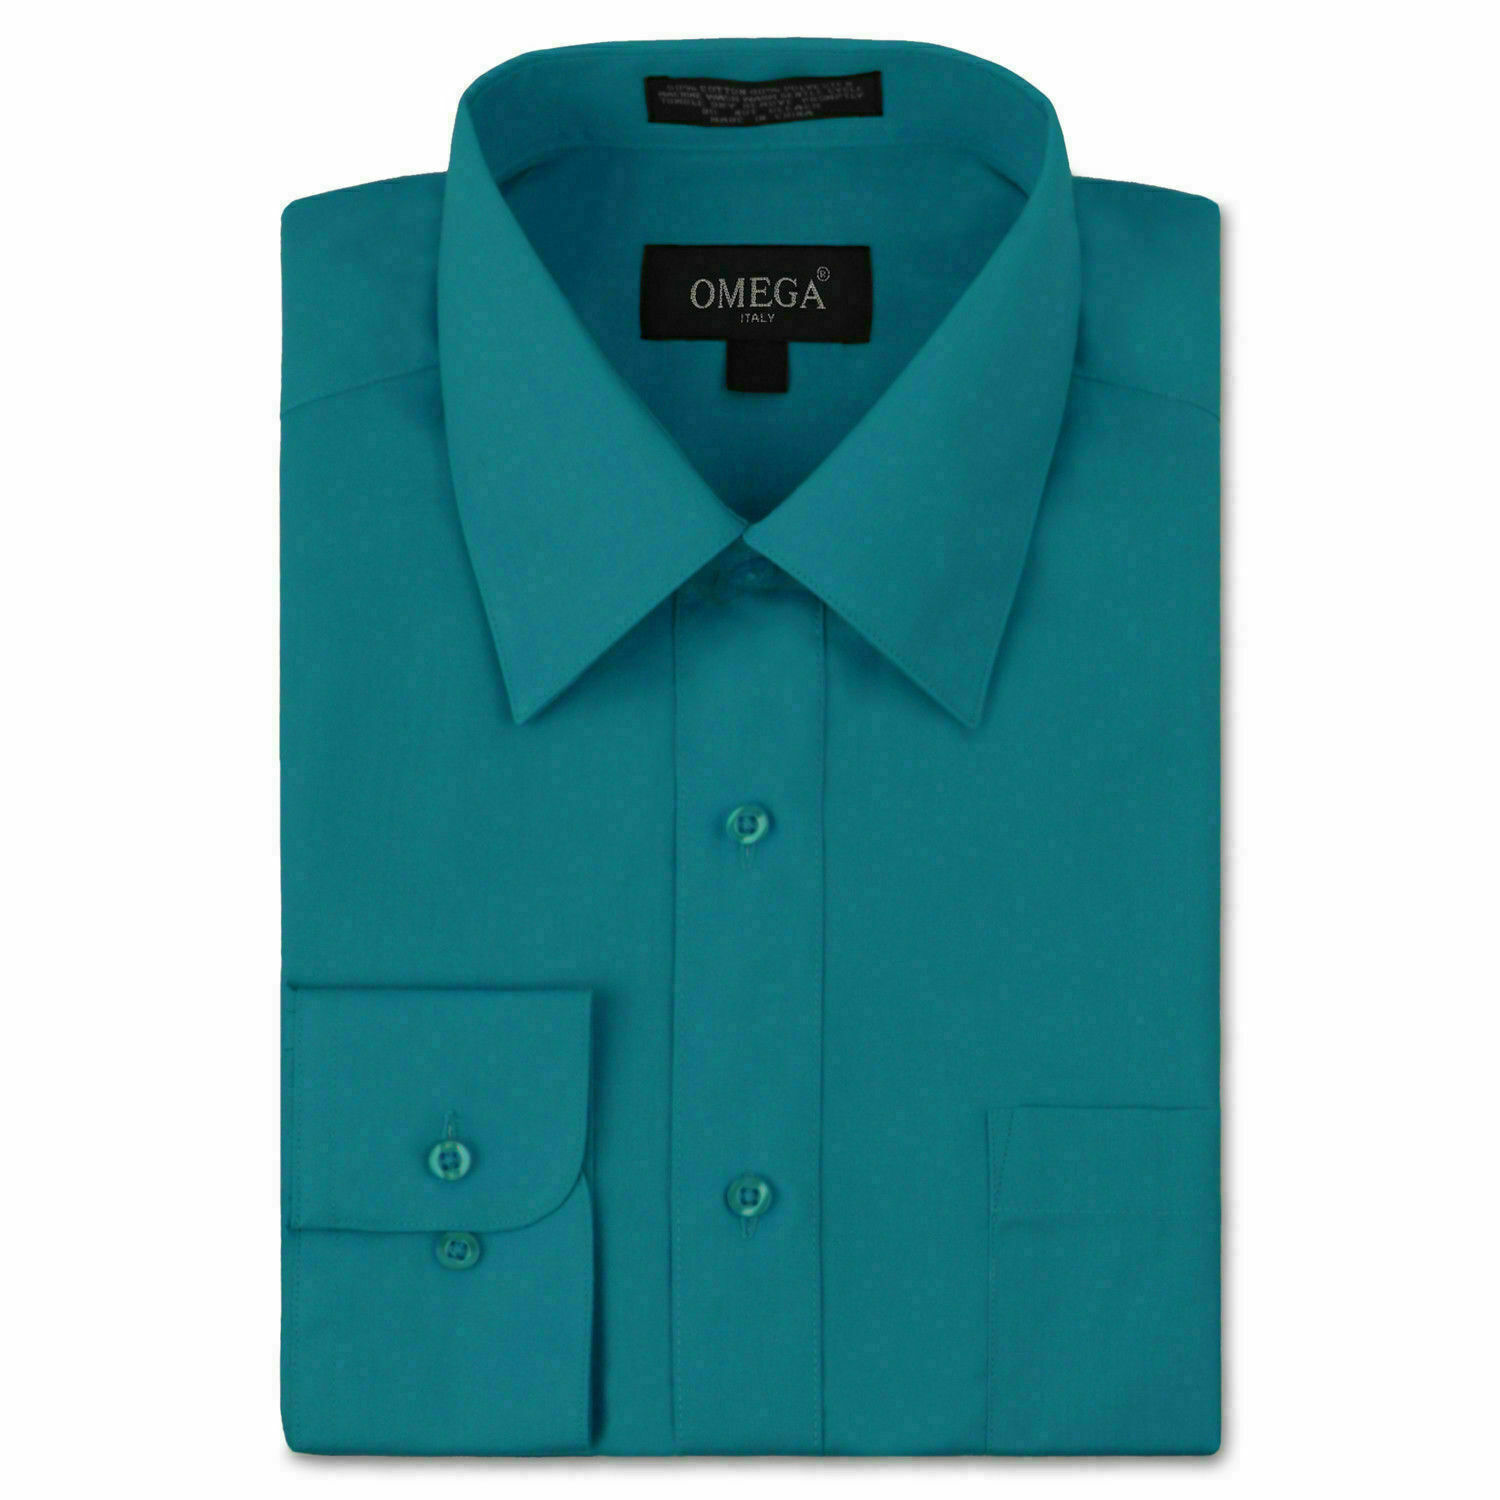 Omega Italy Men's Long Sleeve Regular Fit Teal Dress Shirt - L